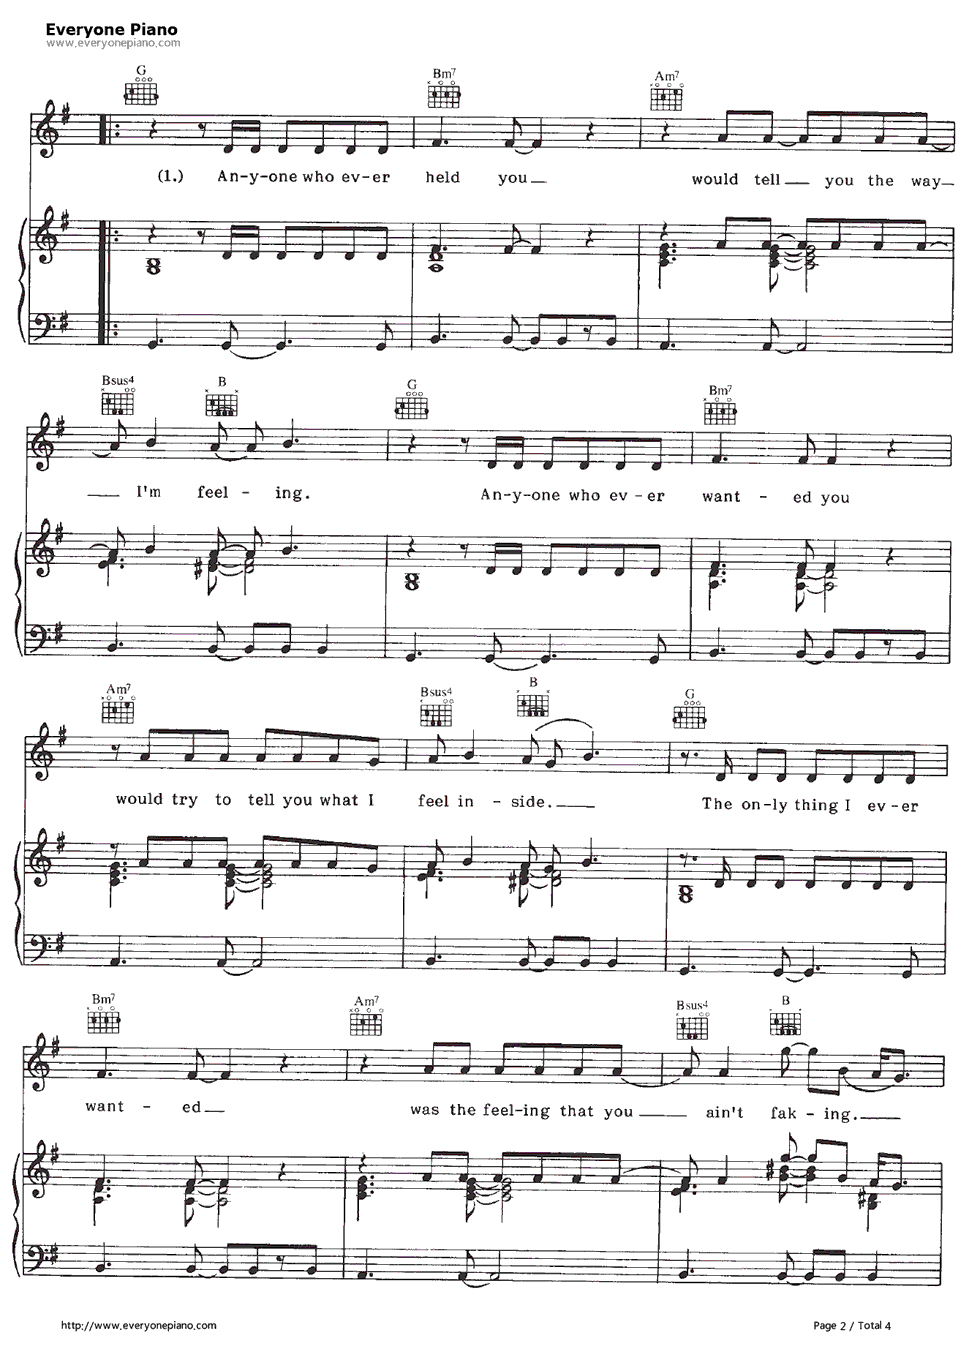 Stars simply red stave preview 2 free piano sheet music piano listen now print sheet stars simply red stave preview 2 hexwebz Gallery